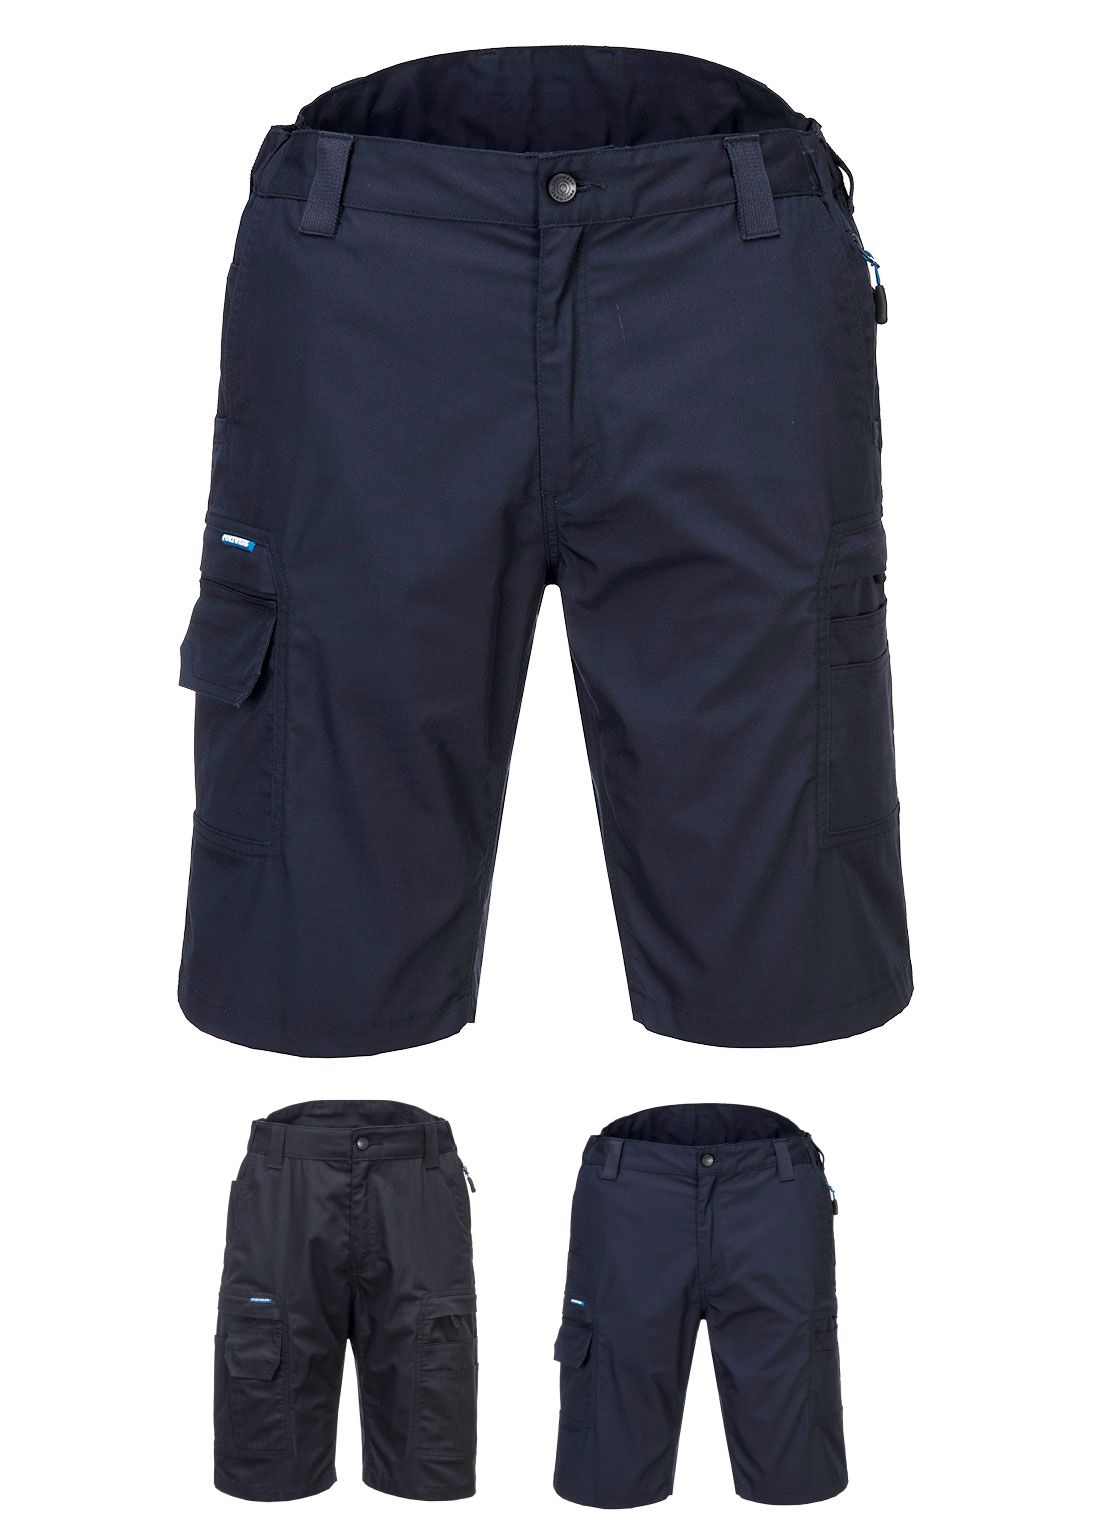 KX340 Portwest Ripstop Shorts